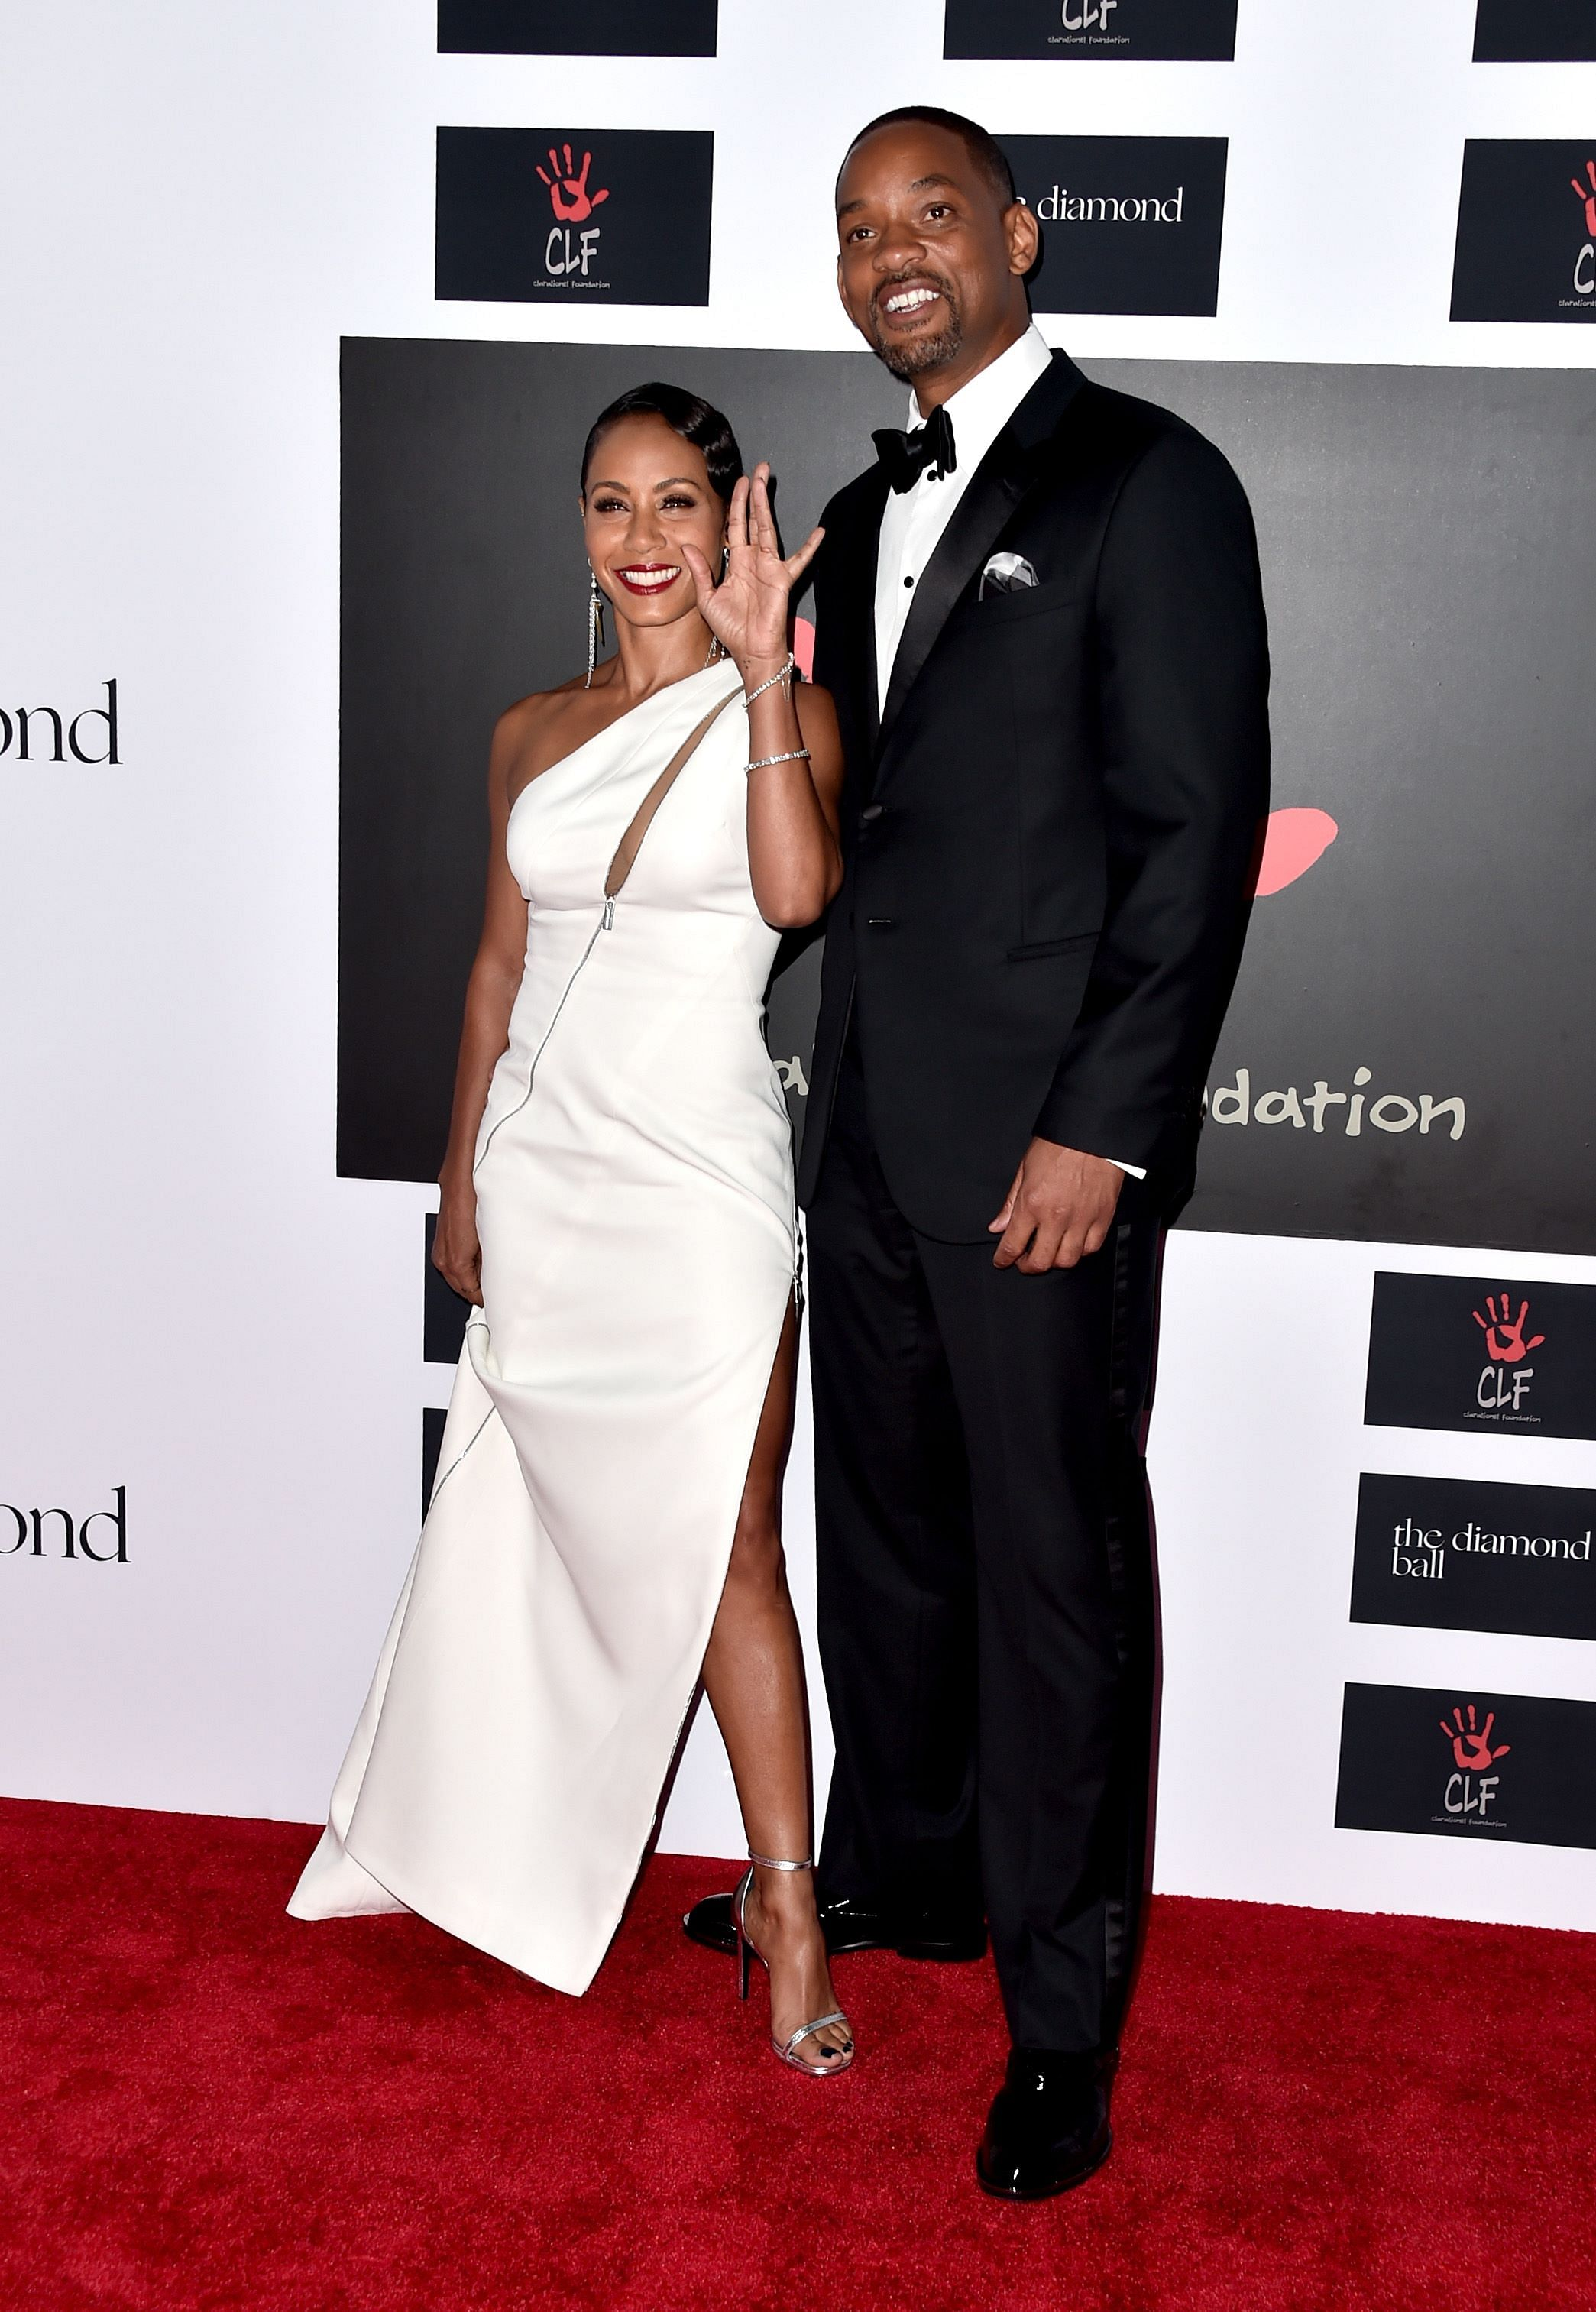 9472443b7a7c Actors Jada Pinkett Smith and Will Smith attend the second annual Diamond  Ball fundraising event on Dec 10, 2015. PHOTO: AFP